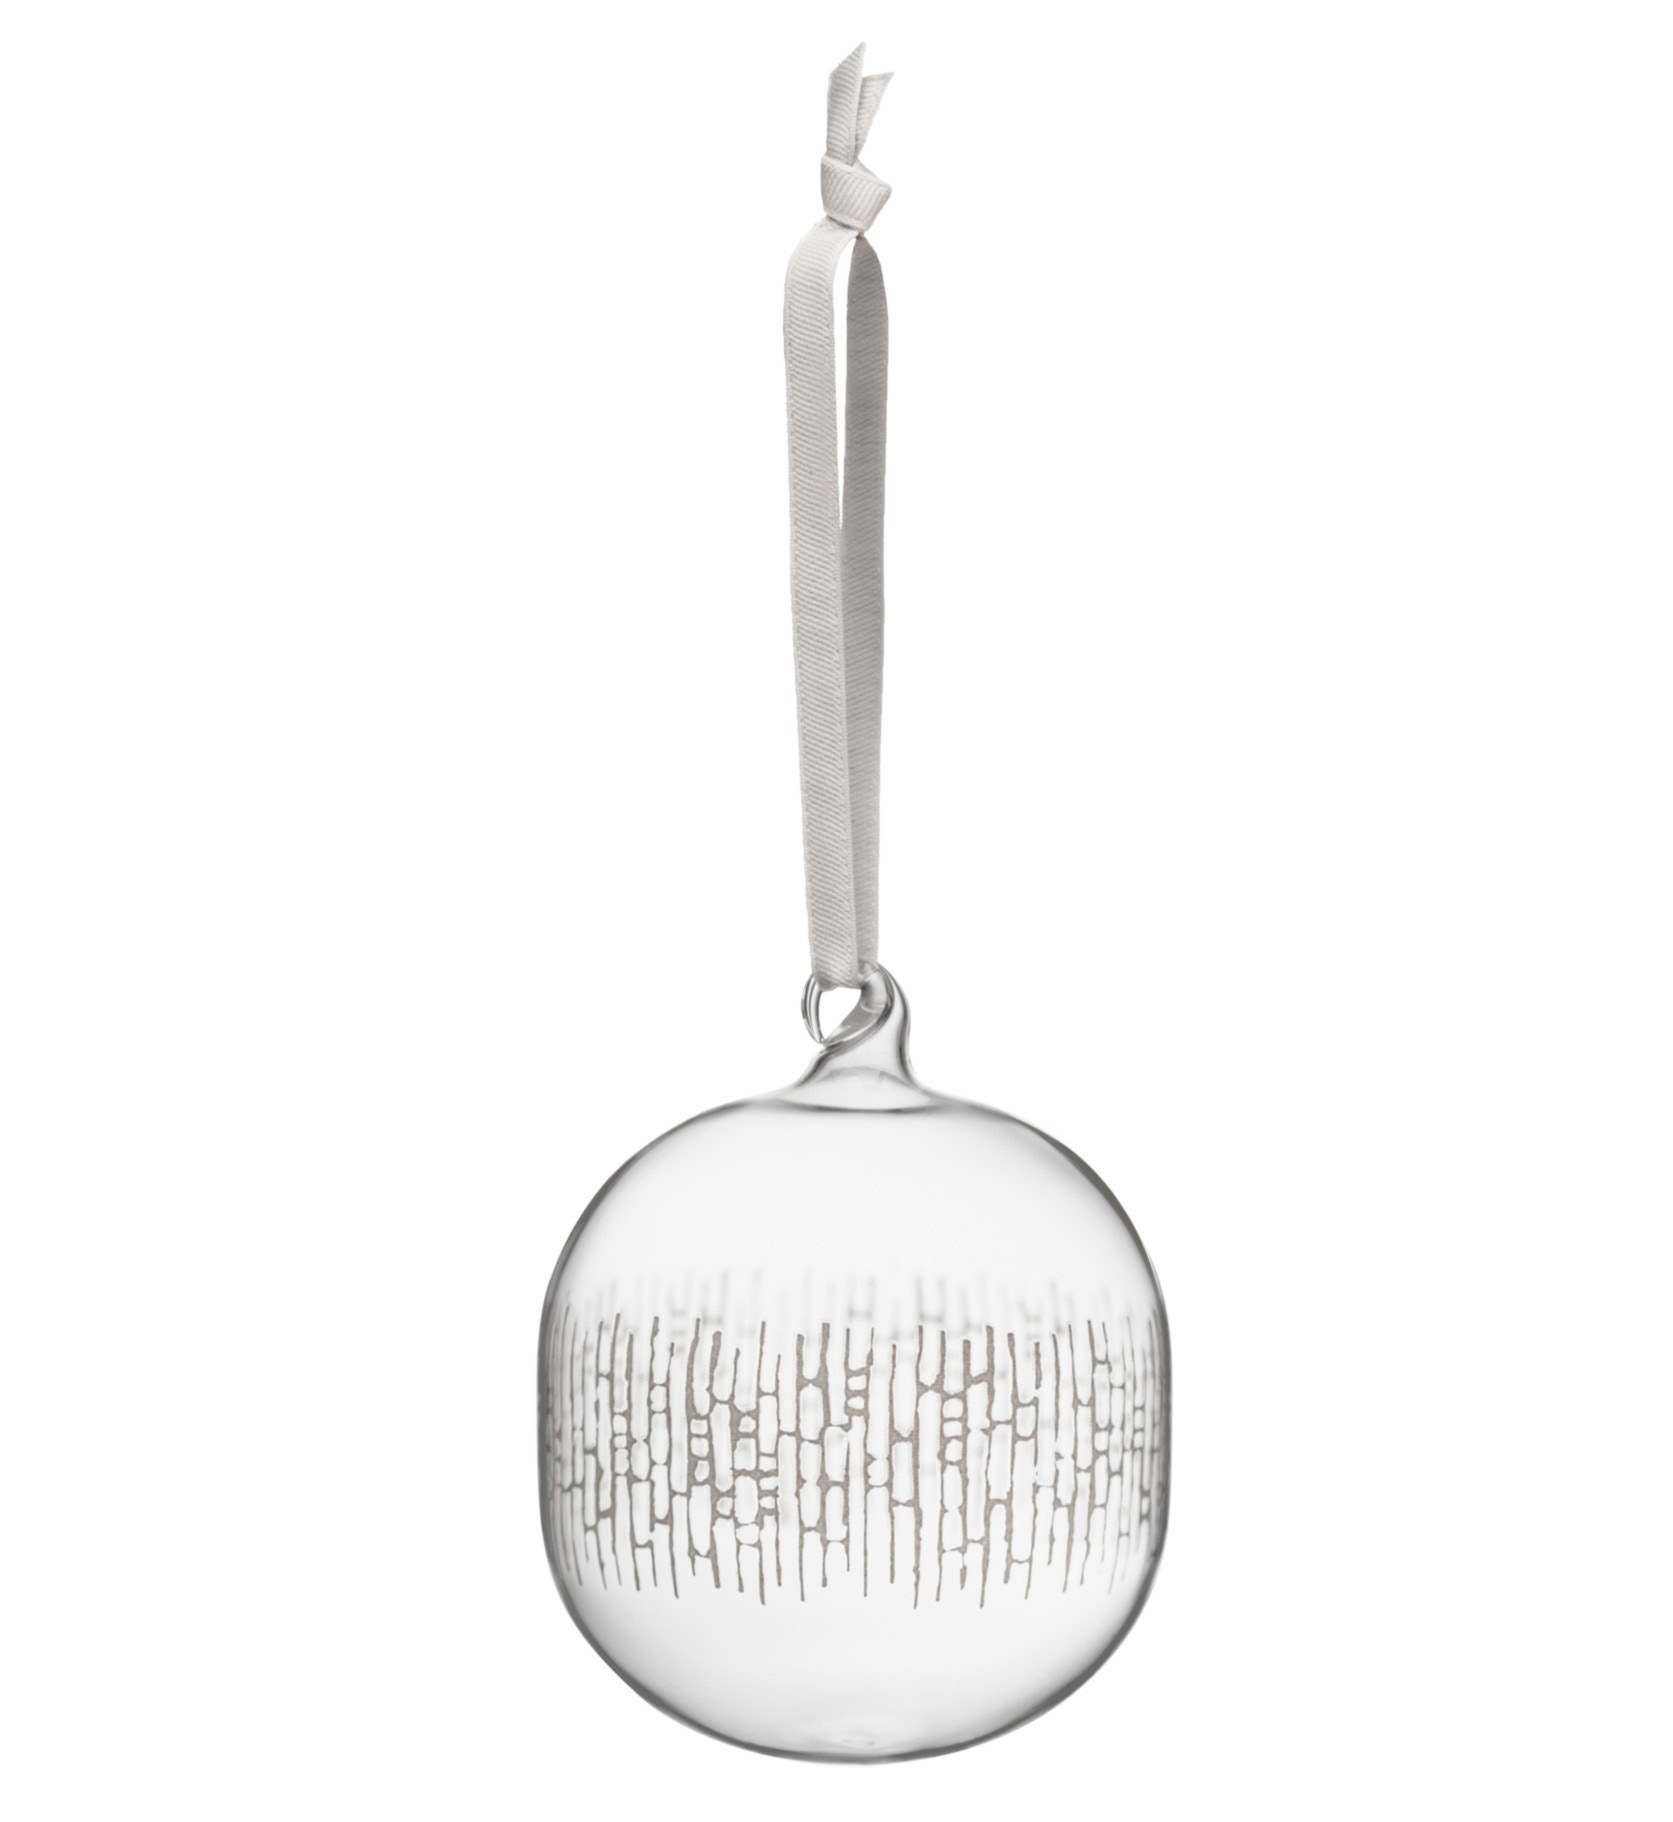 Iittala Ultima Thule Christmas Ball Ornament